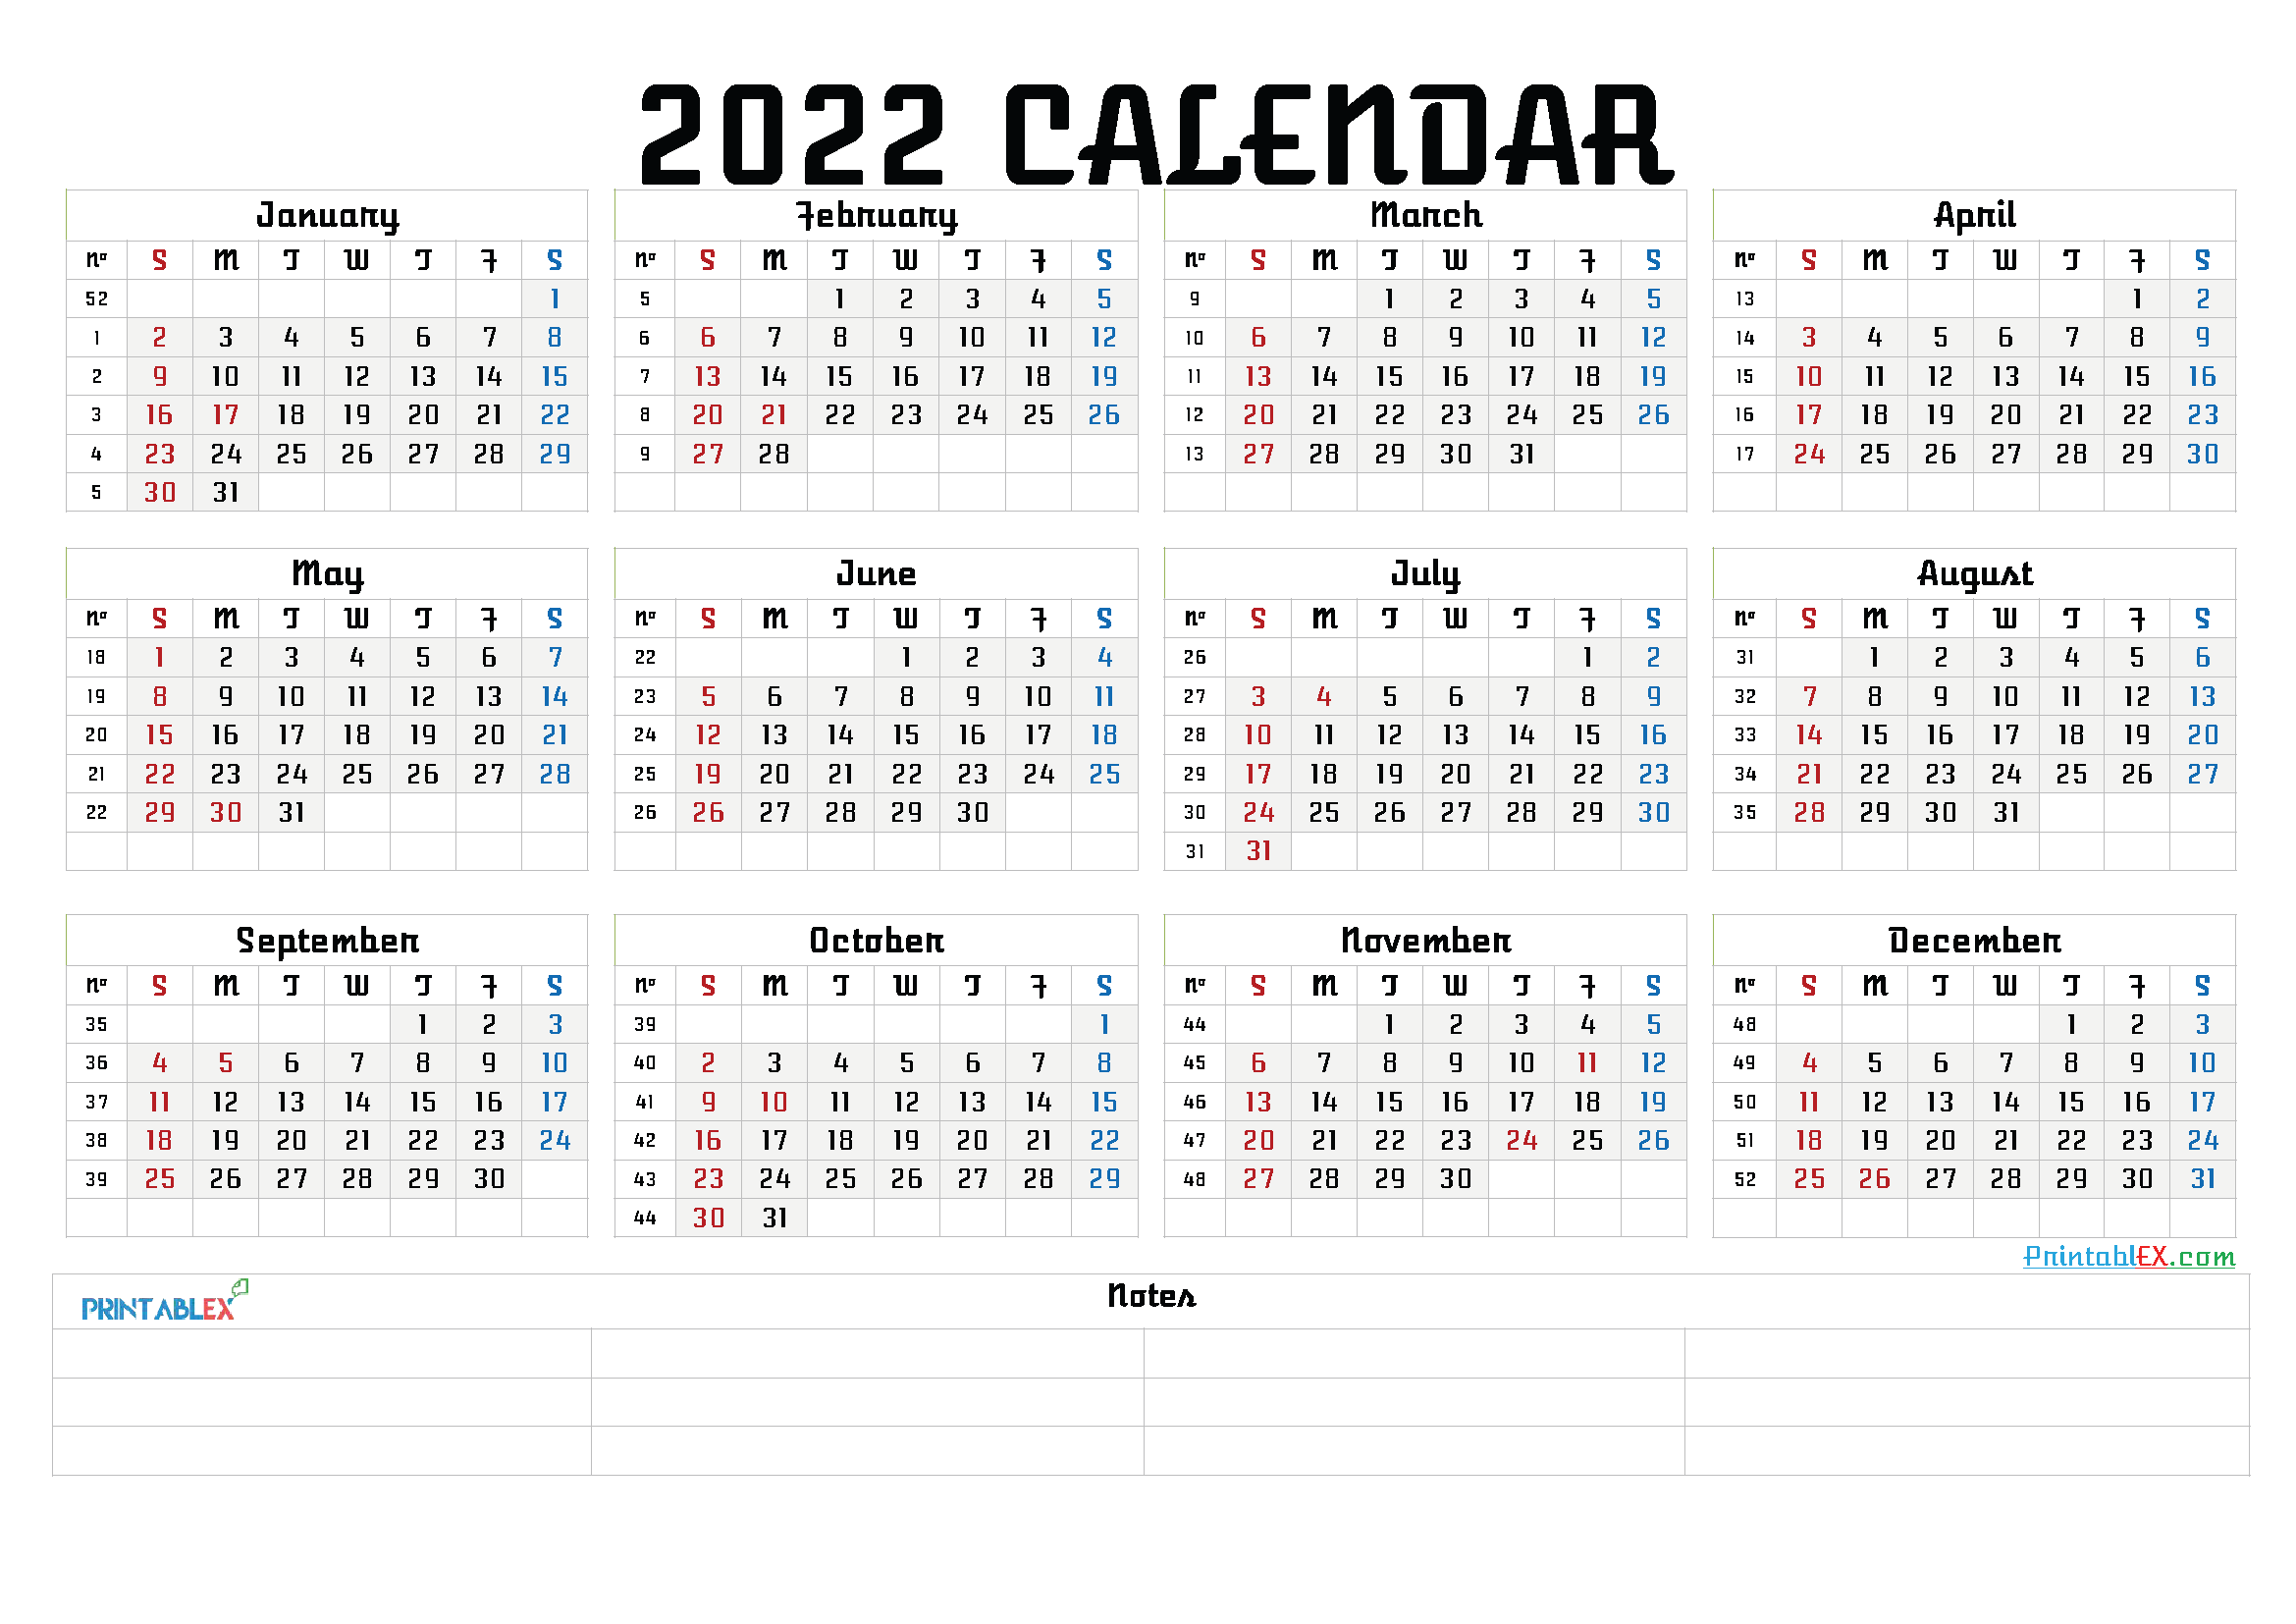 Printable 2022 Calendar by Month (Font: ghous)